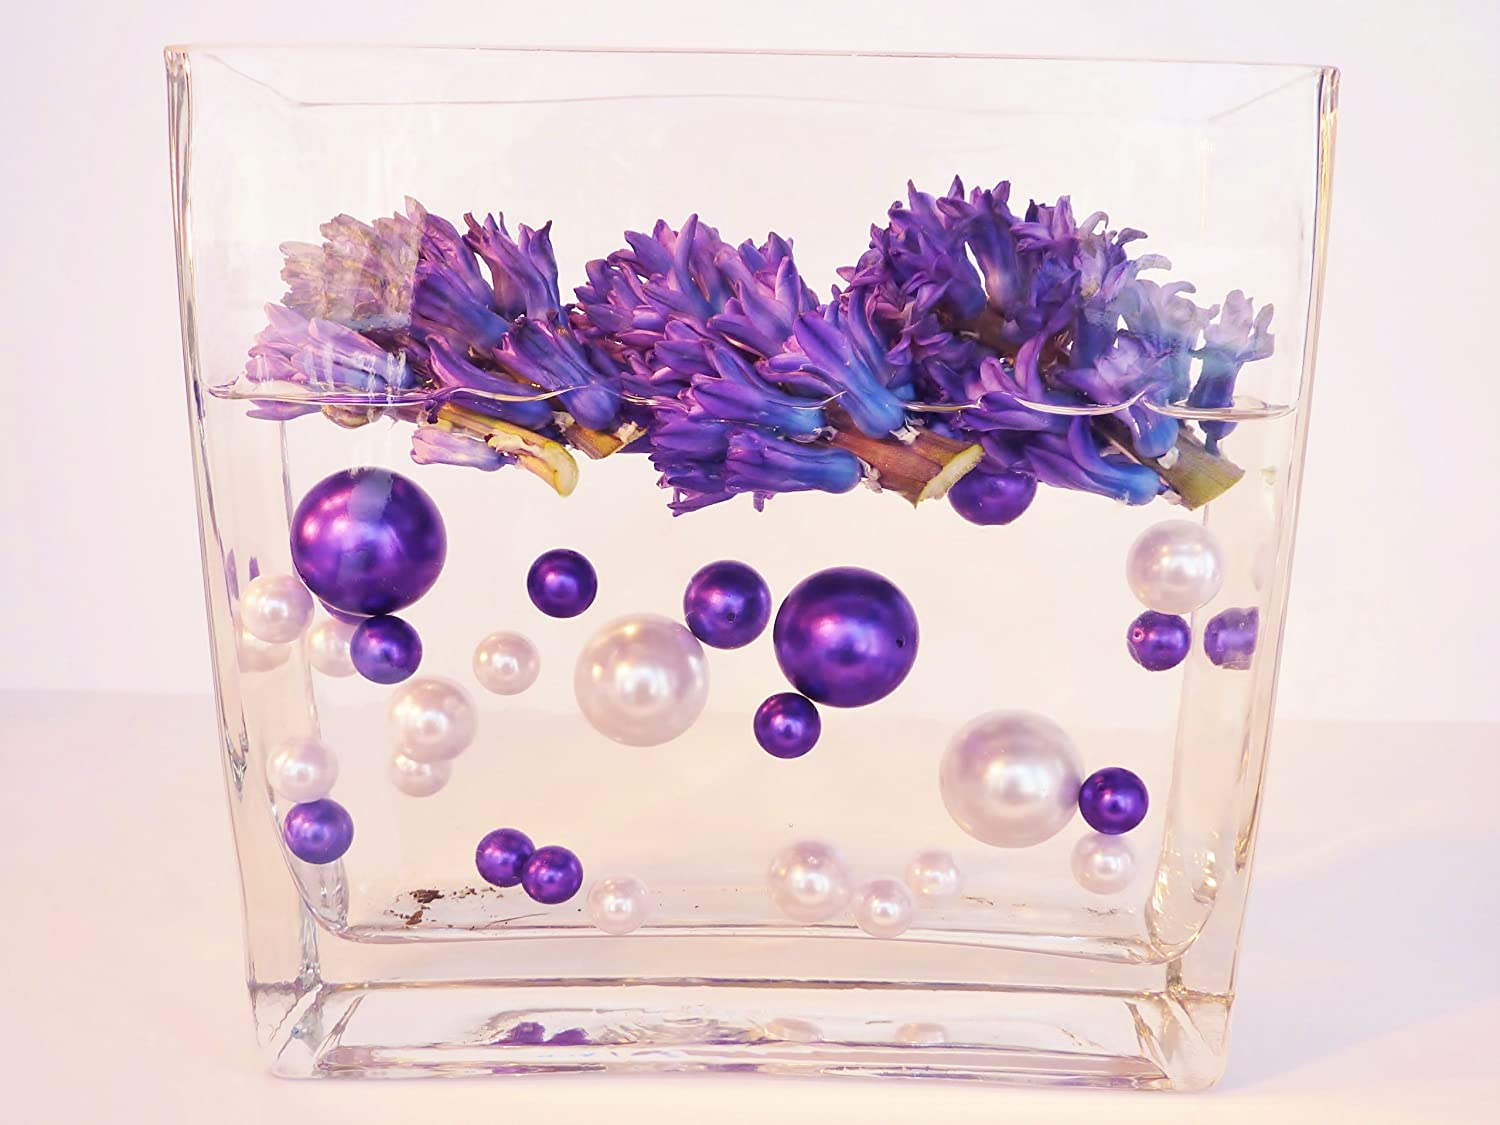 Amazon 80 jumbo assorted sizes all purple pearls vase amazon 80 jumbo assorted sizes all purple pearls vase fillers value pack not including the transparent water gels for floating the pearls sold reviewsmspy